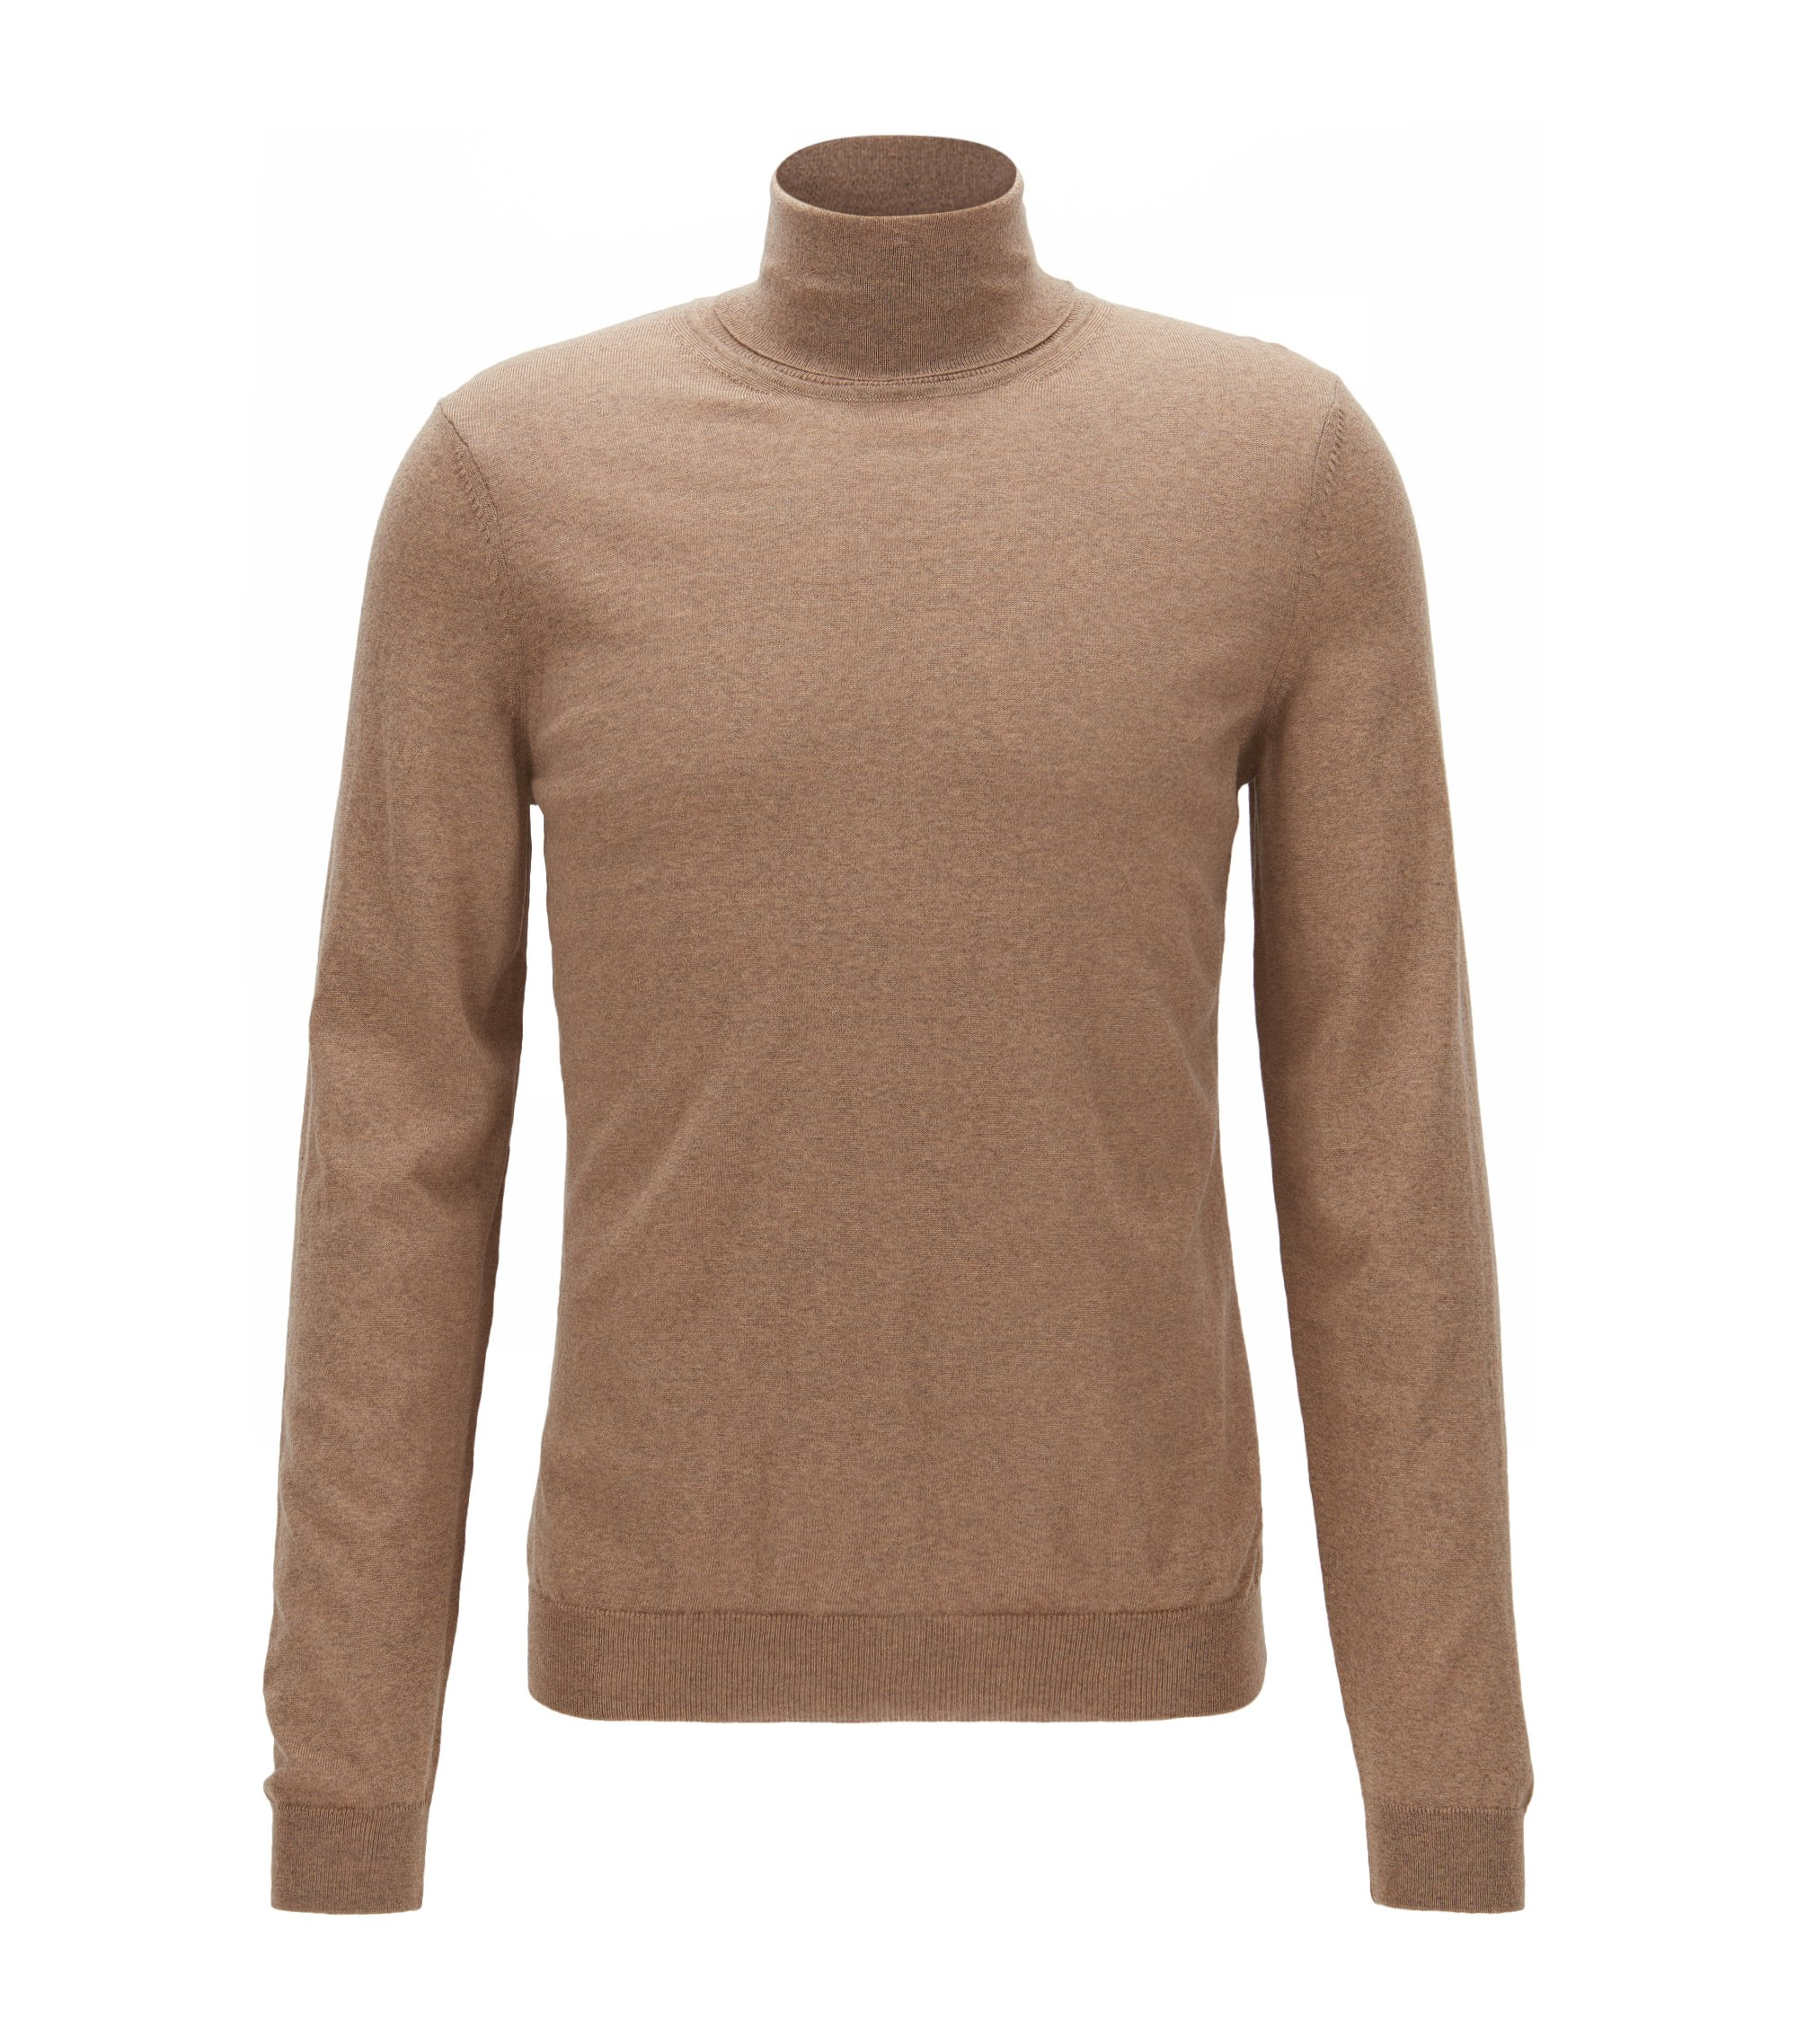 Maglione slim fit in lana con colletto a tartaruga, Beige